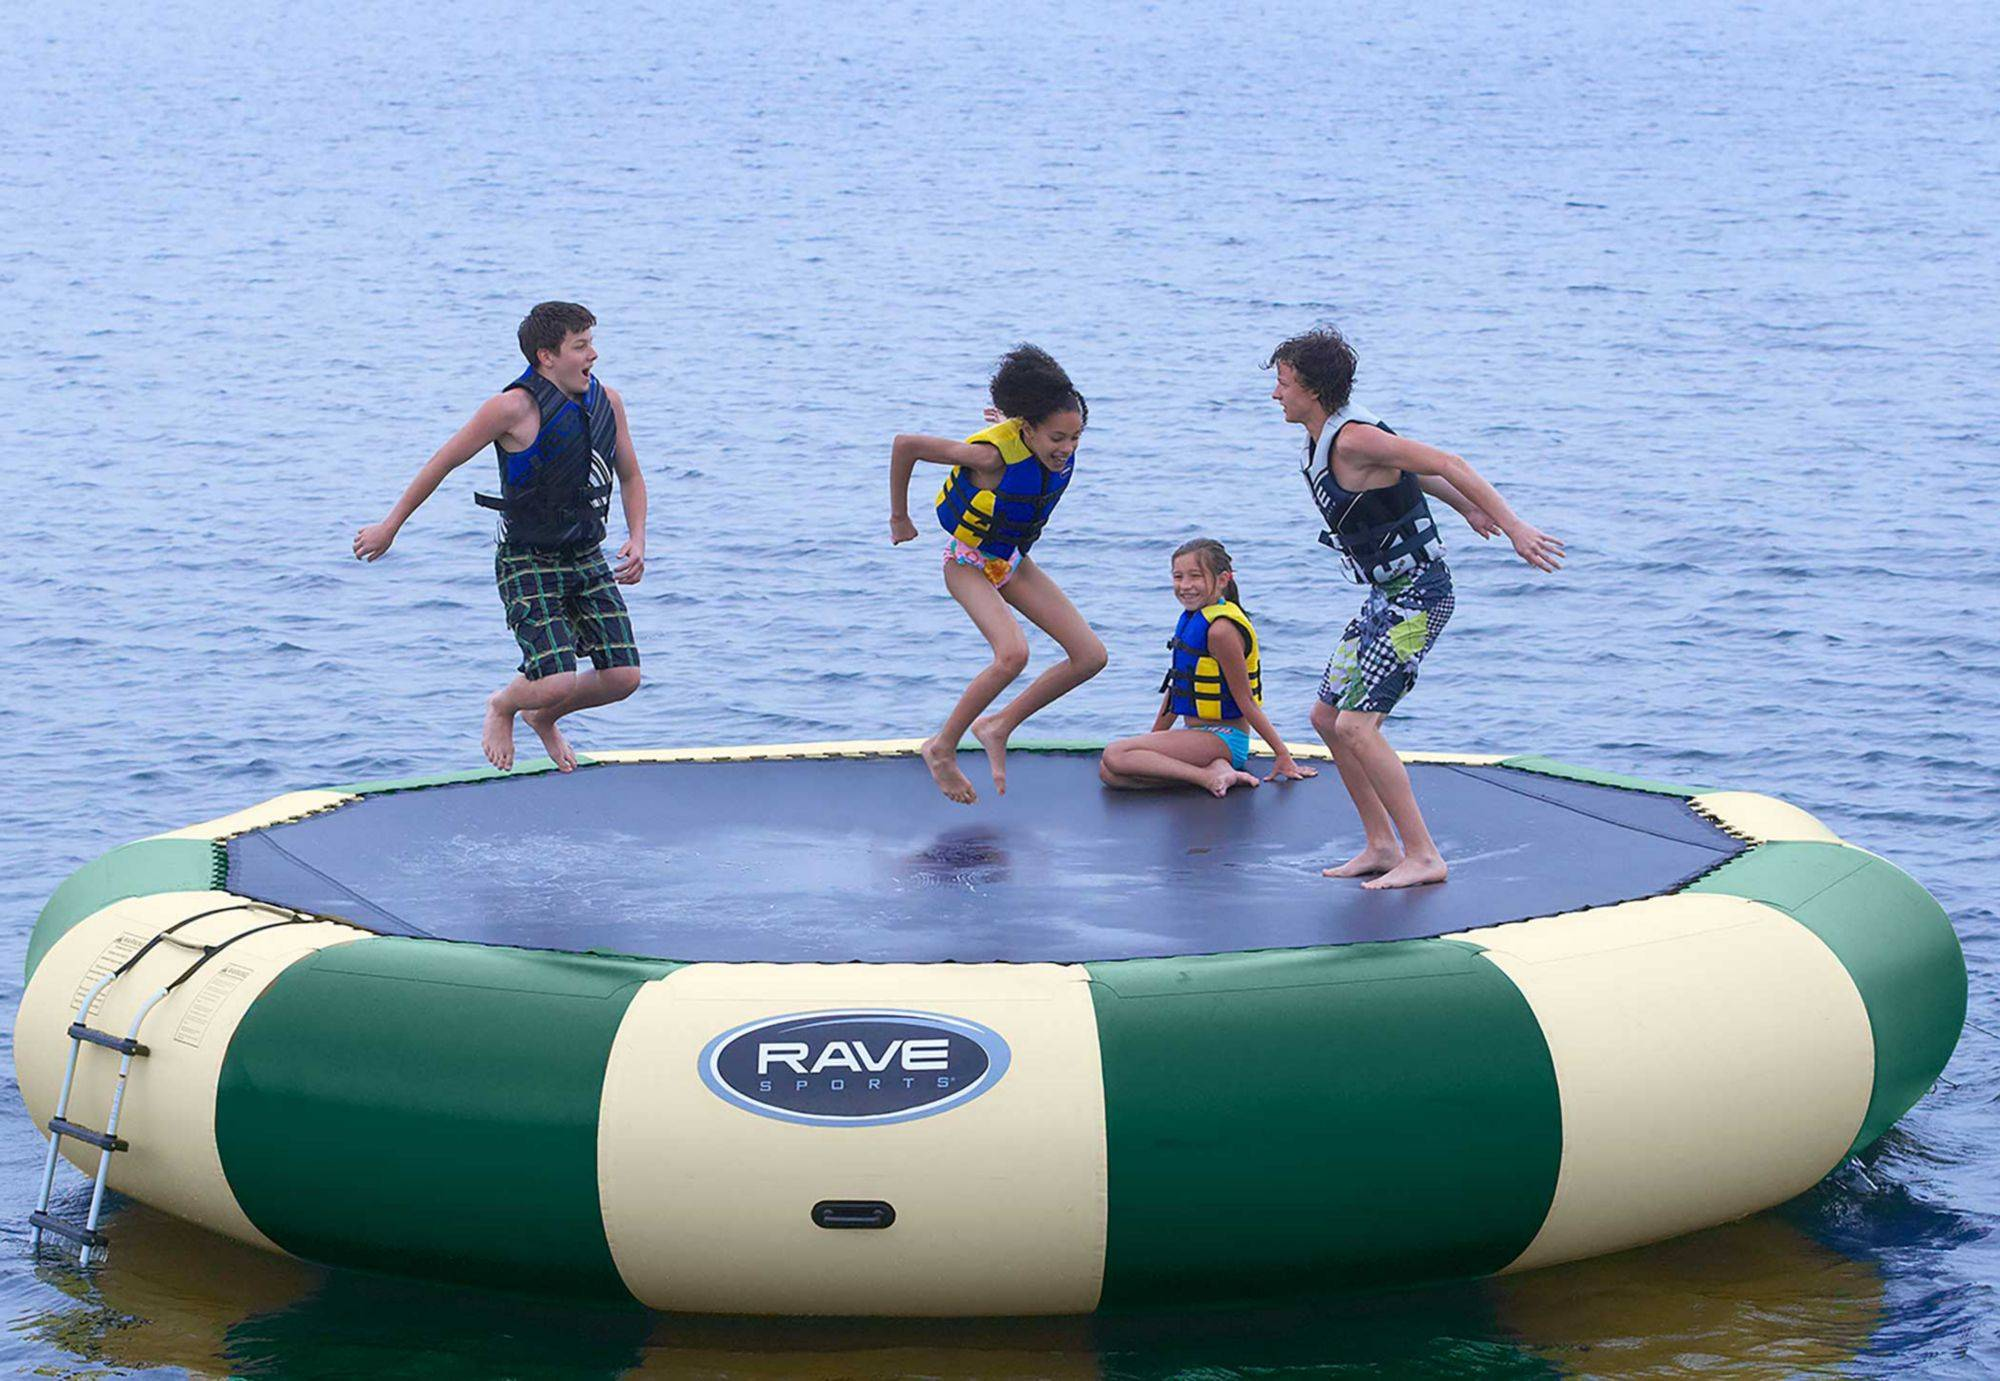 Rave Sports Bongo 20 Northwood's Bouncer Water Trampoline, 20 FT., Green